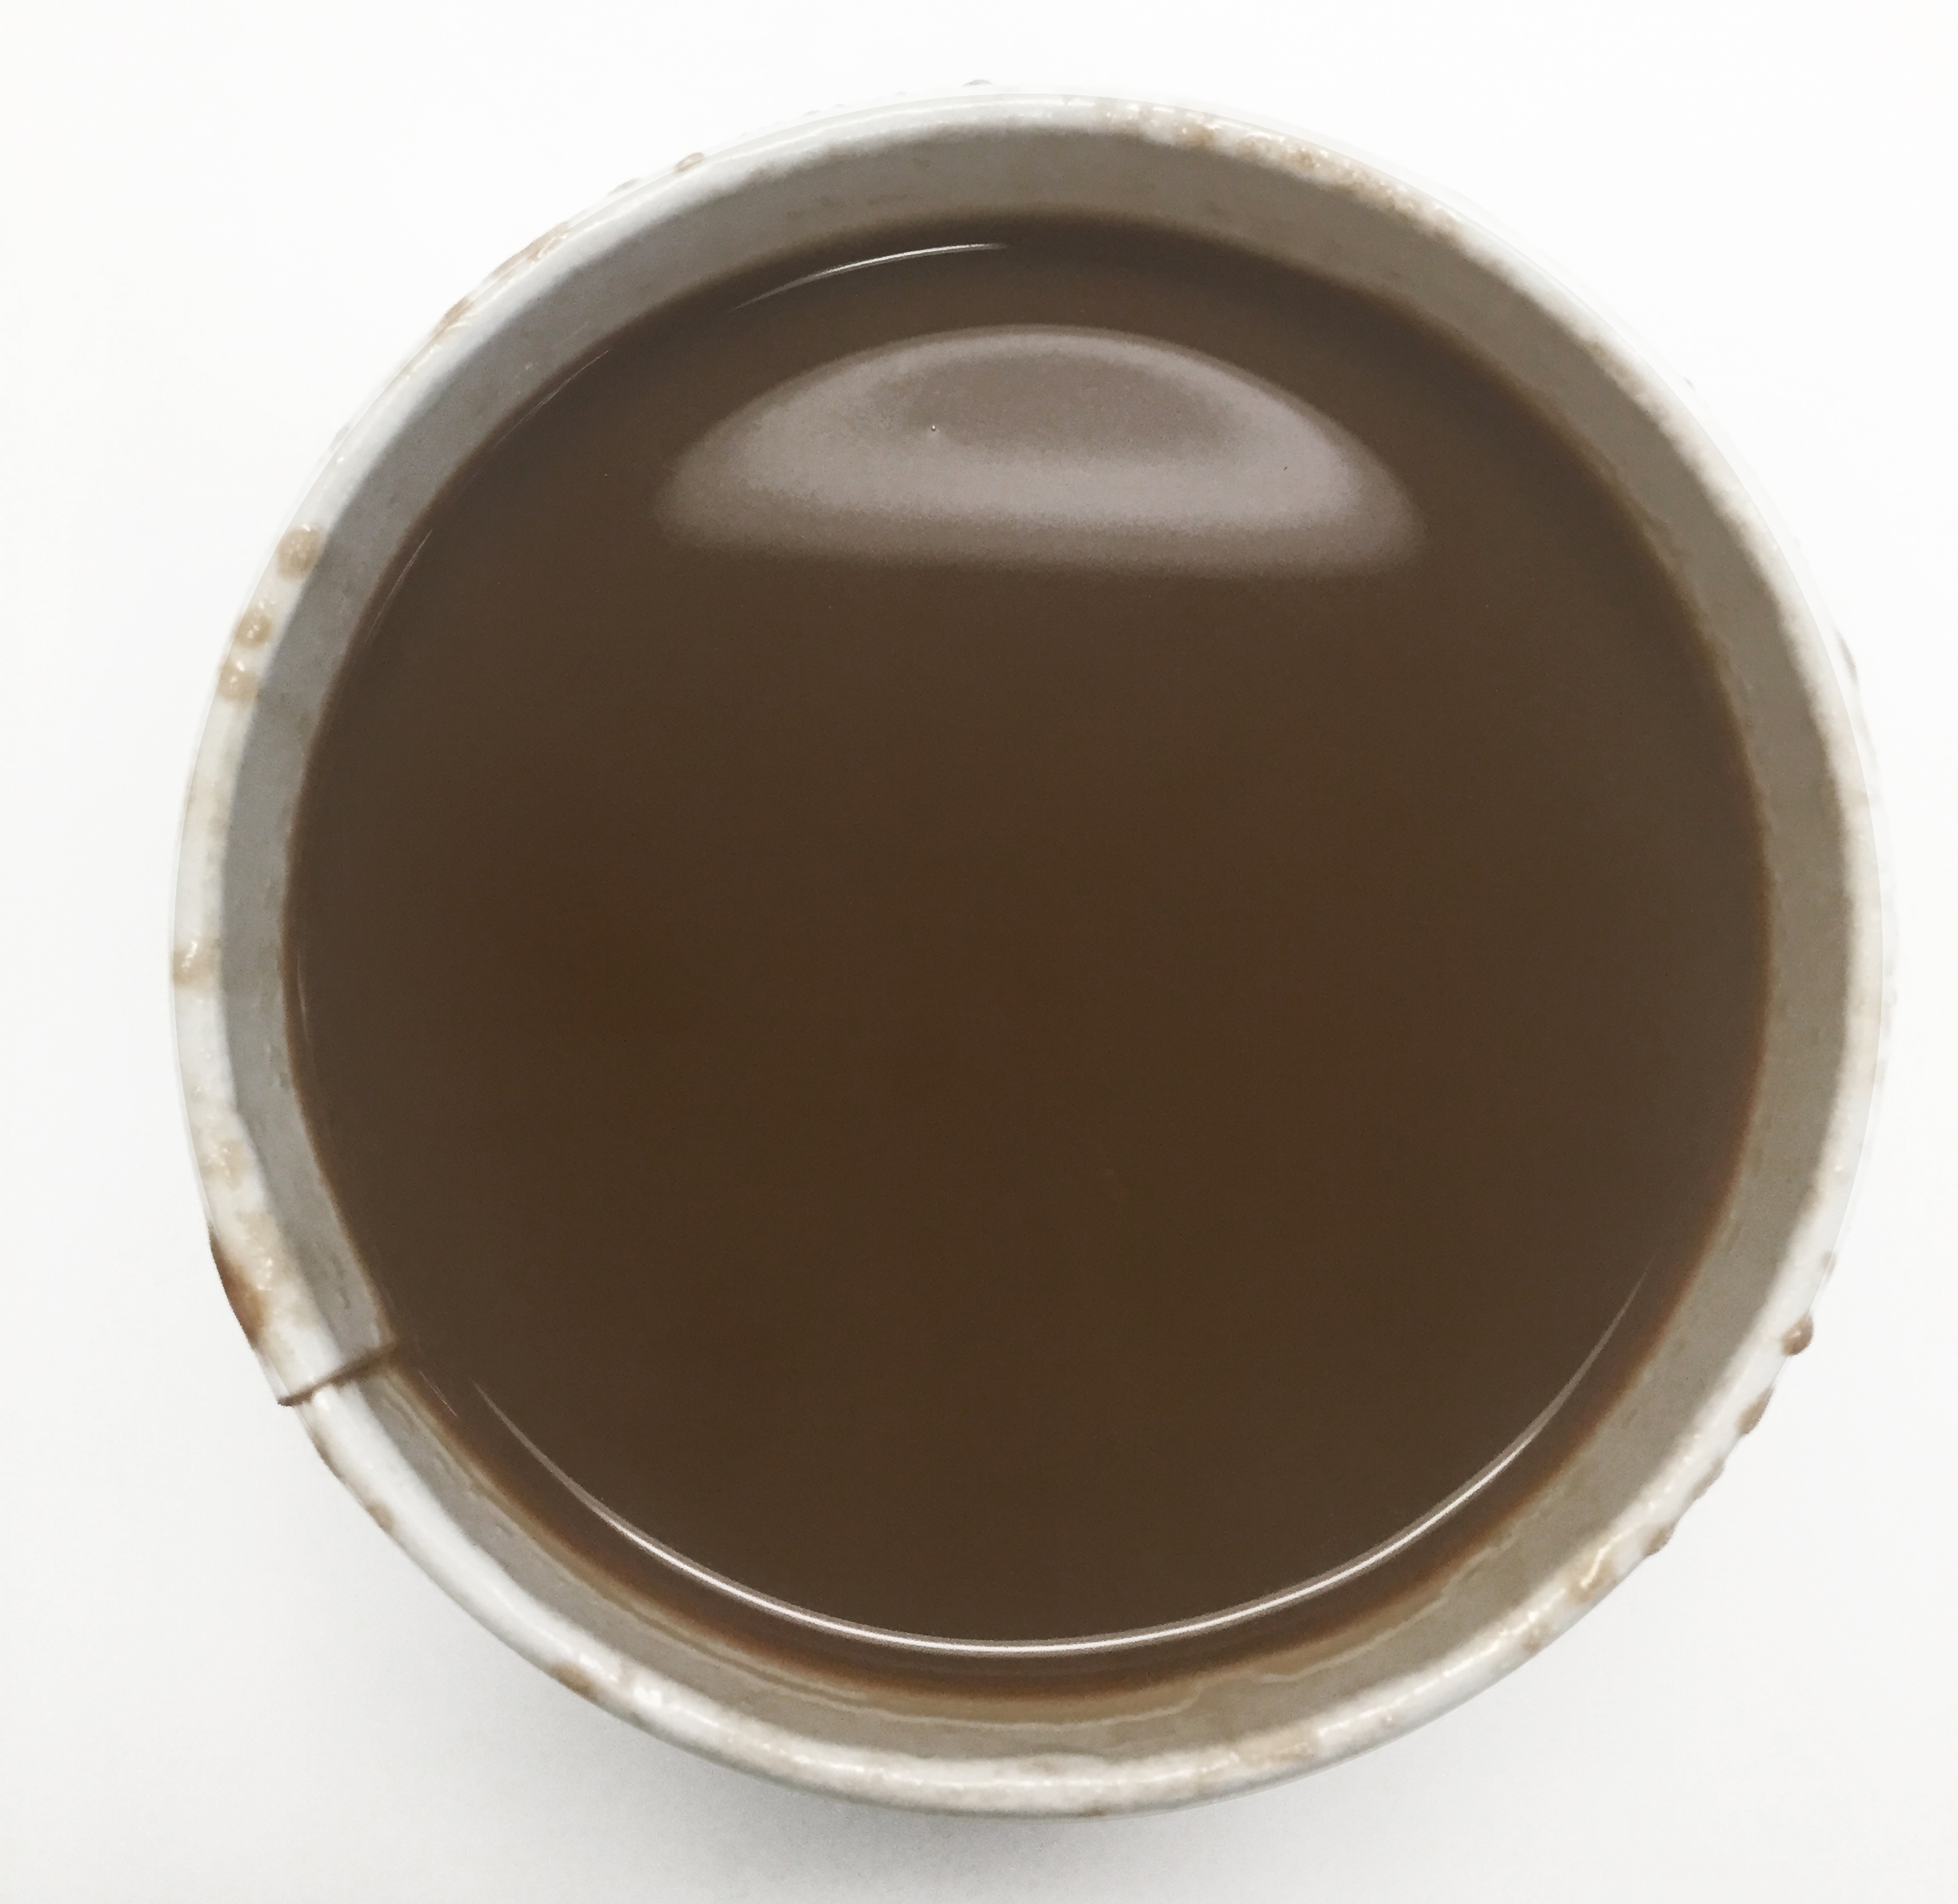 Top view of Starbucks salted caramel hot chocolate